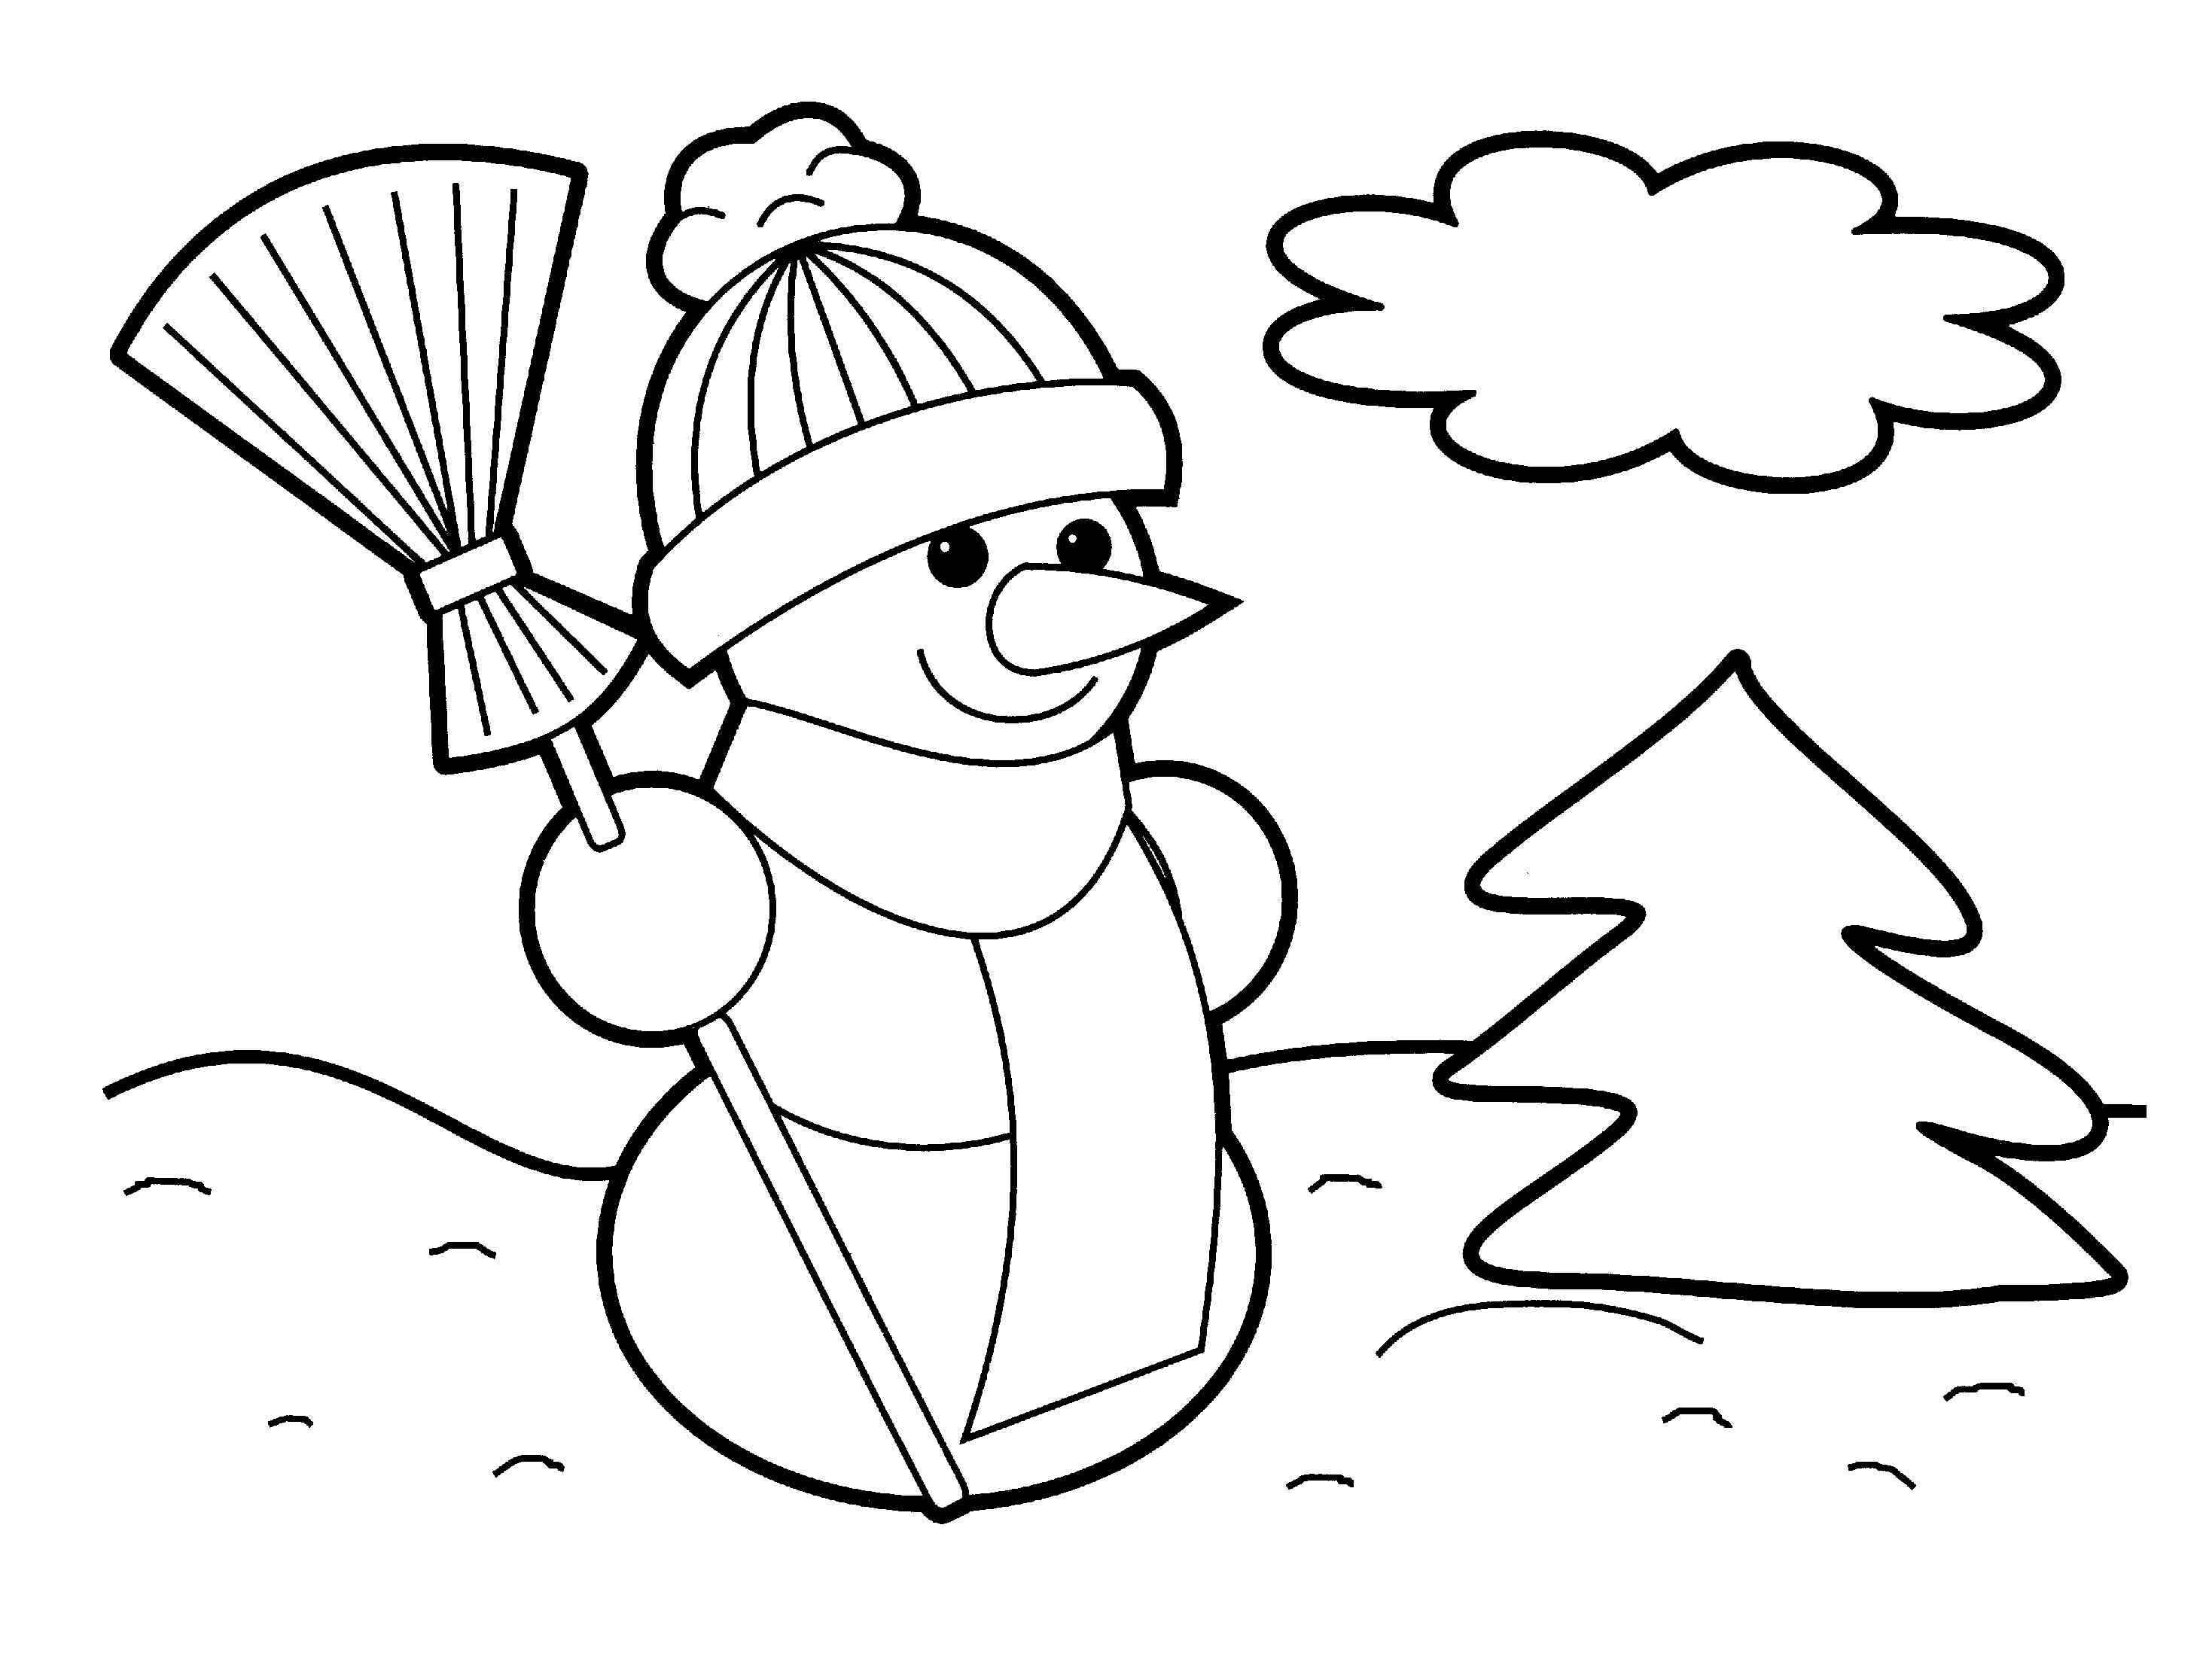 Christmas Coloring Pages Free Large Images Snowman Coloring Pages Christmas Coloring Pages Printable Christmas Coloring Pages